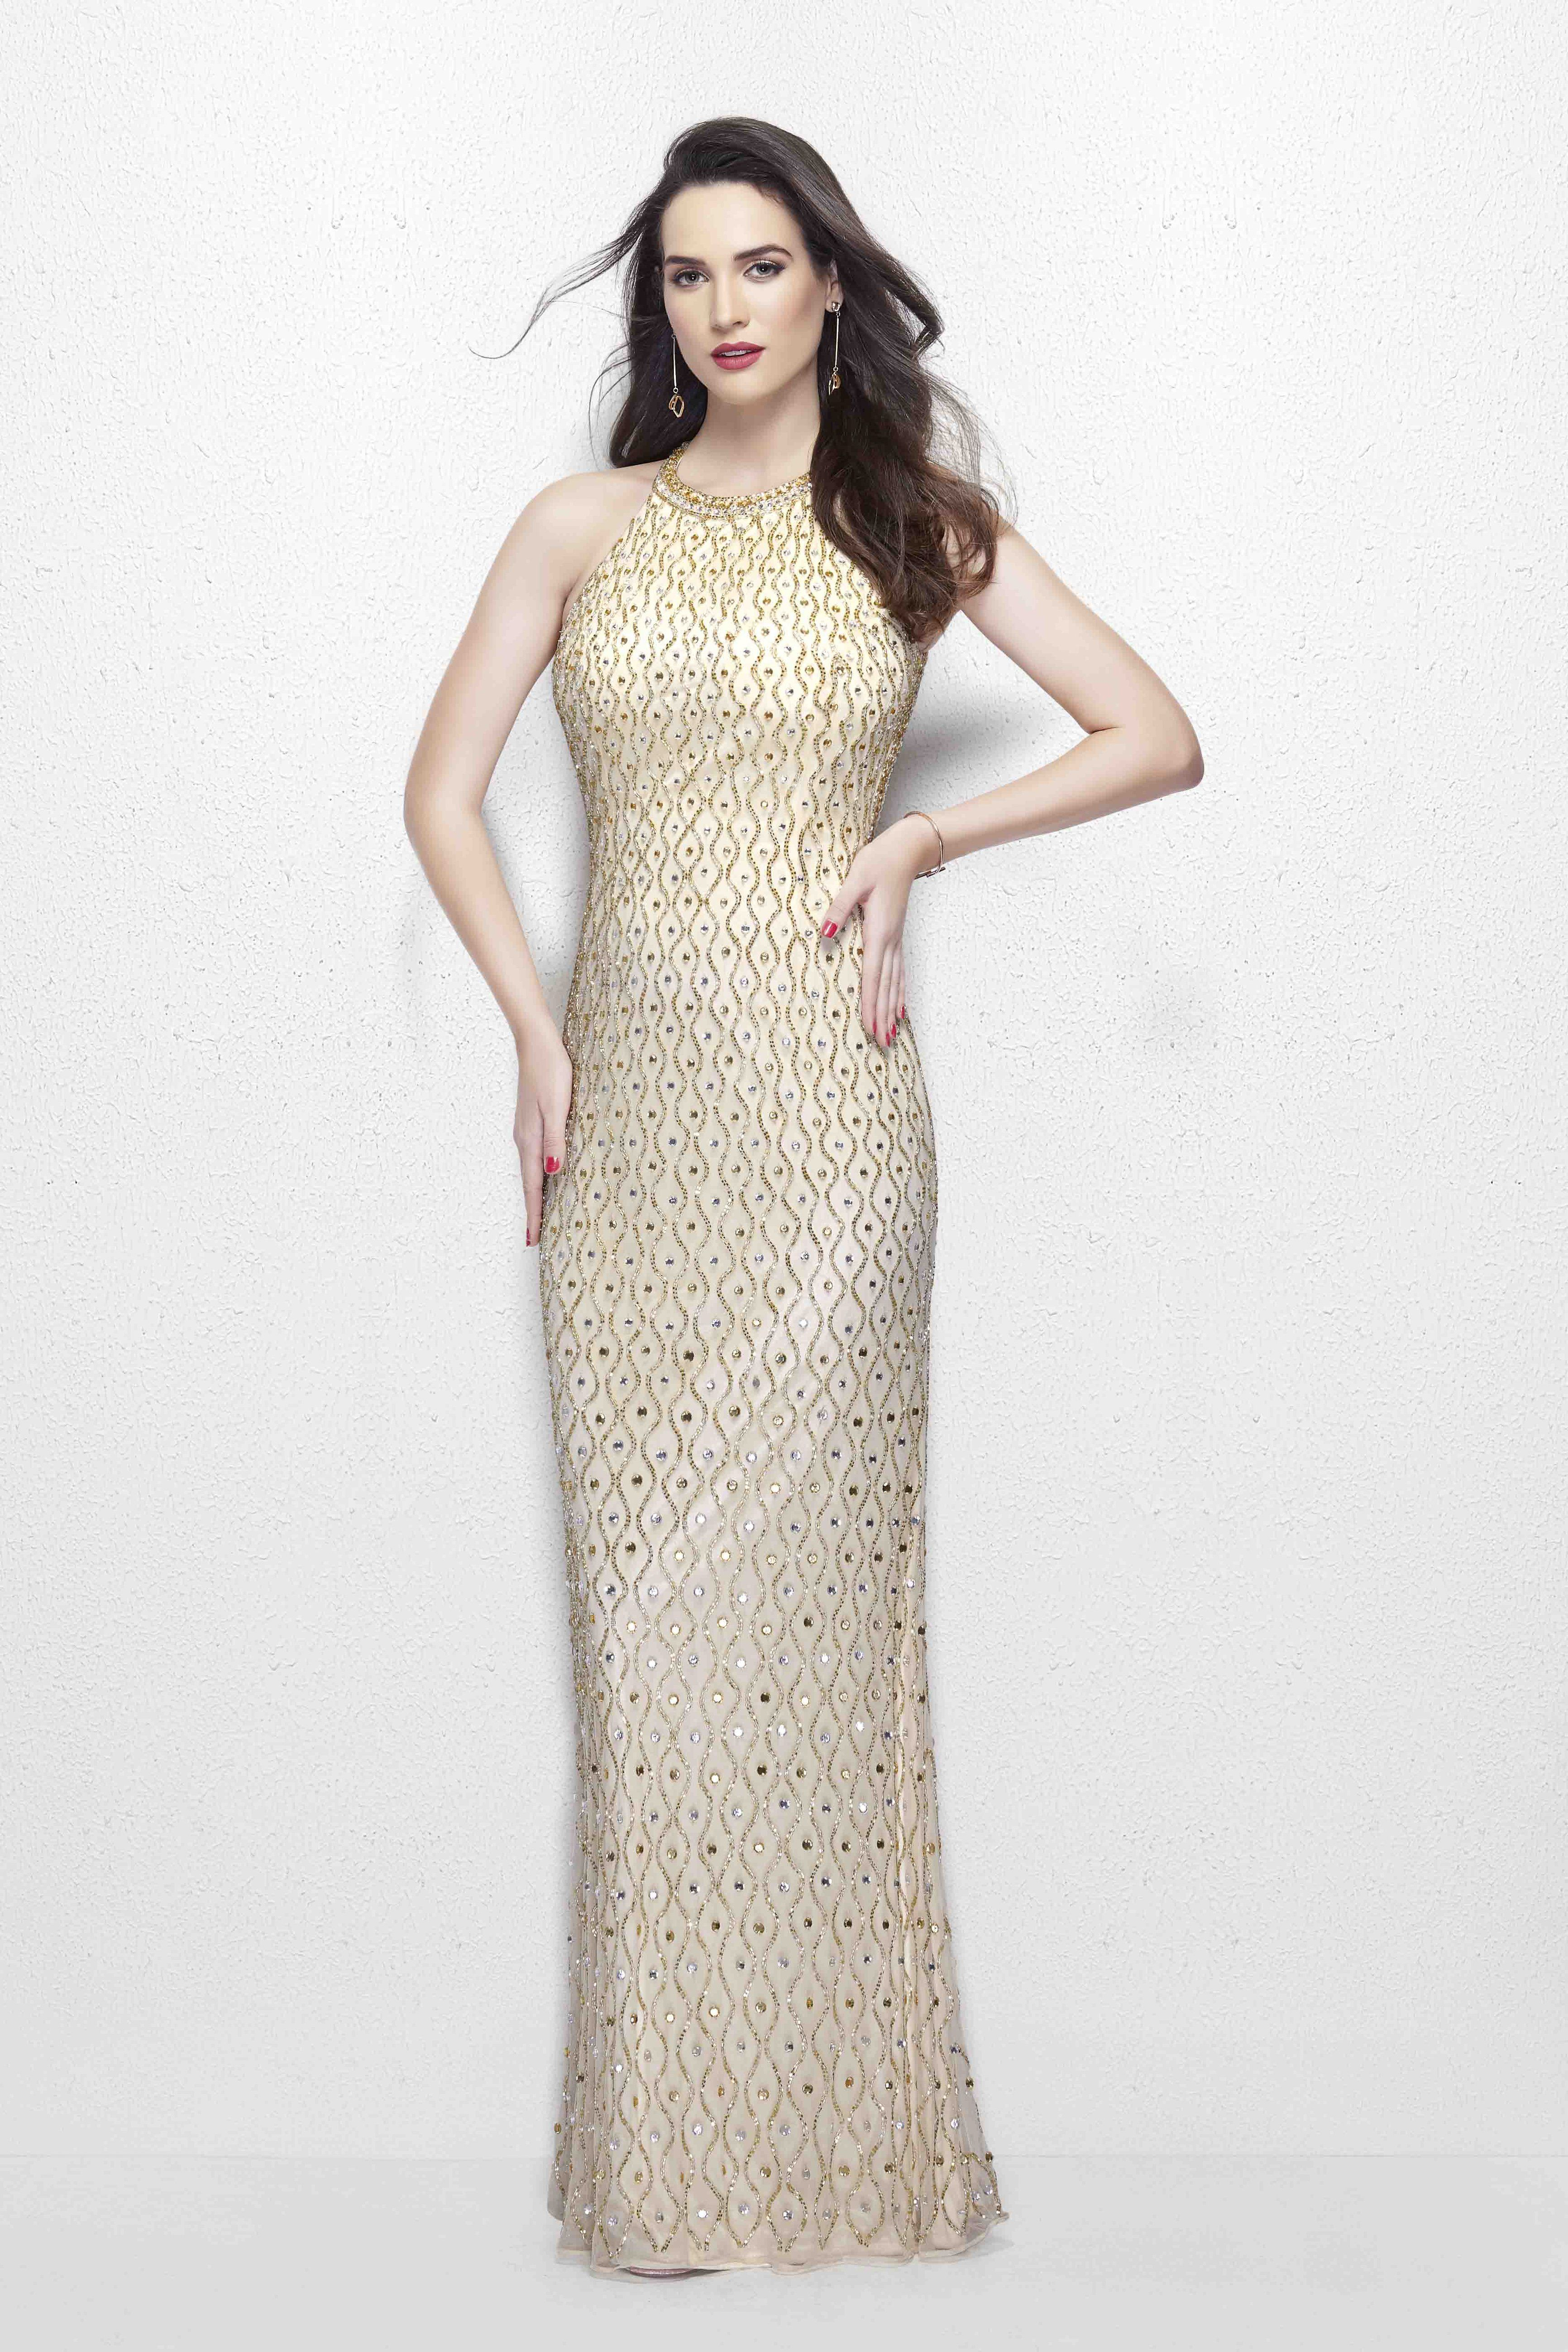 0fb68809889 Primavera Light up the night wearing this gorgeous evening gown. This dress  has a high neckline speckled with eye catching shiny stones